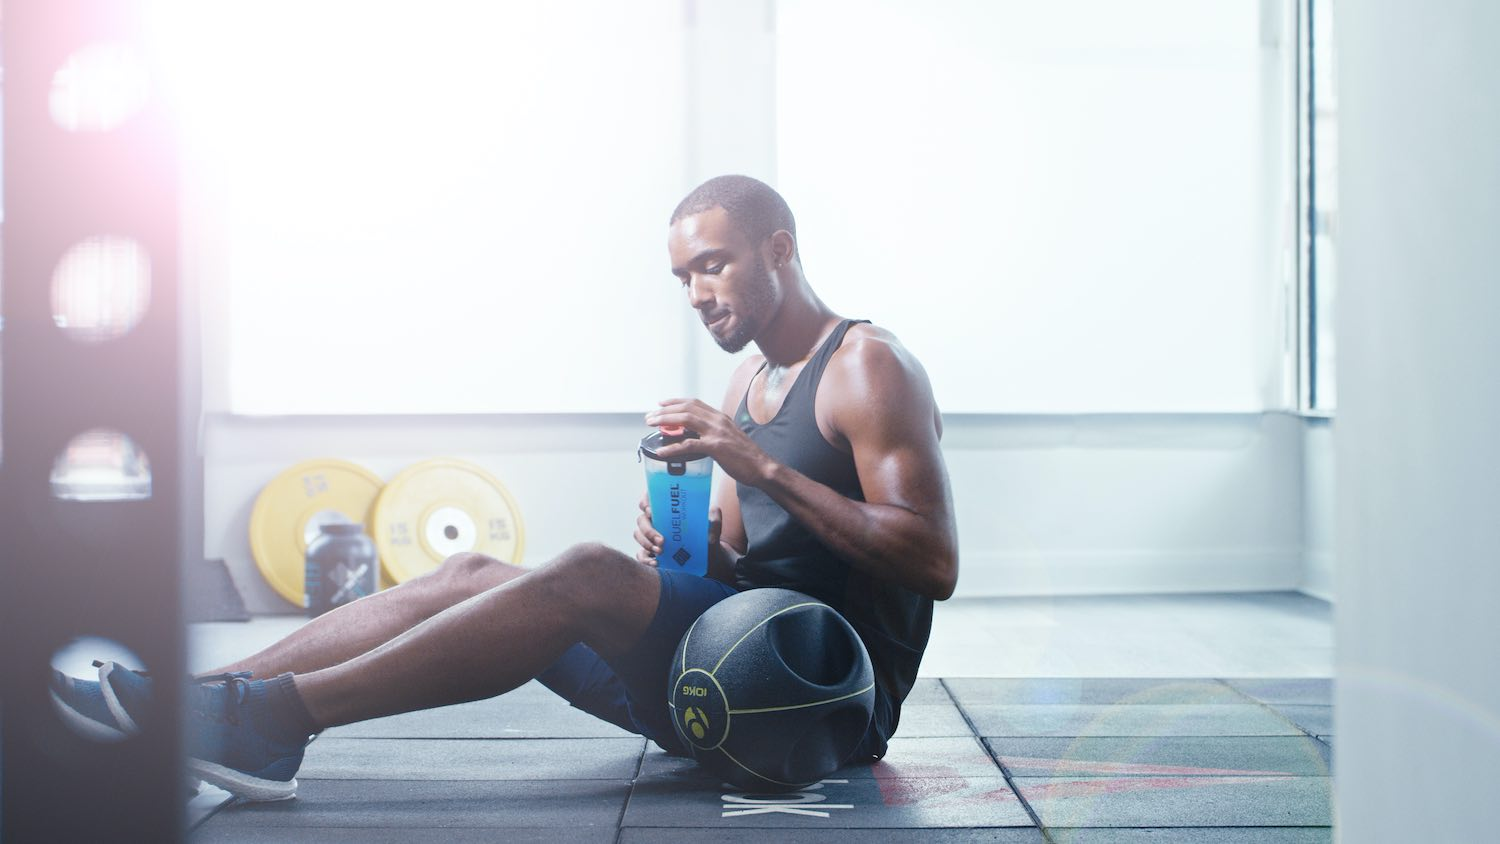 UK's leading Fitness Brands collaborate to offer Personal Trainers a lifeline